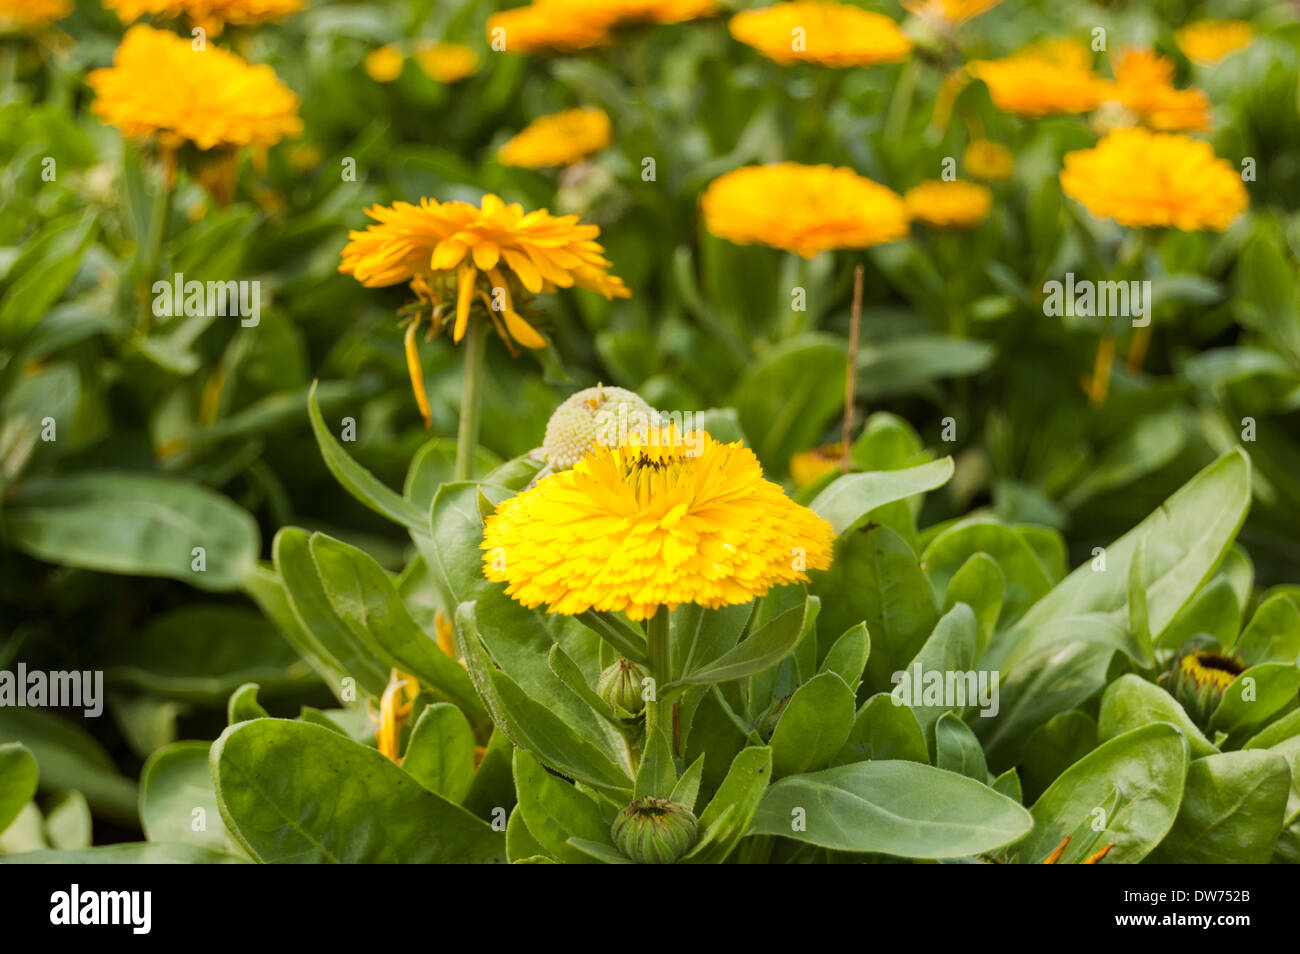 Close Up Of Yellow Flowers In A Park Stock Photo 67155155 Alamy